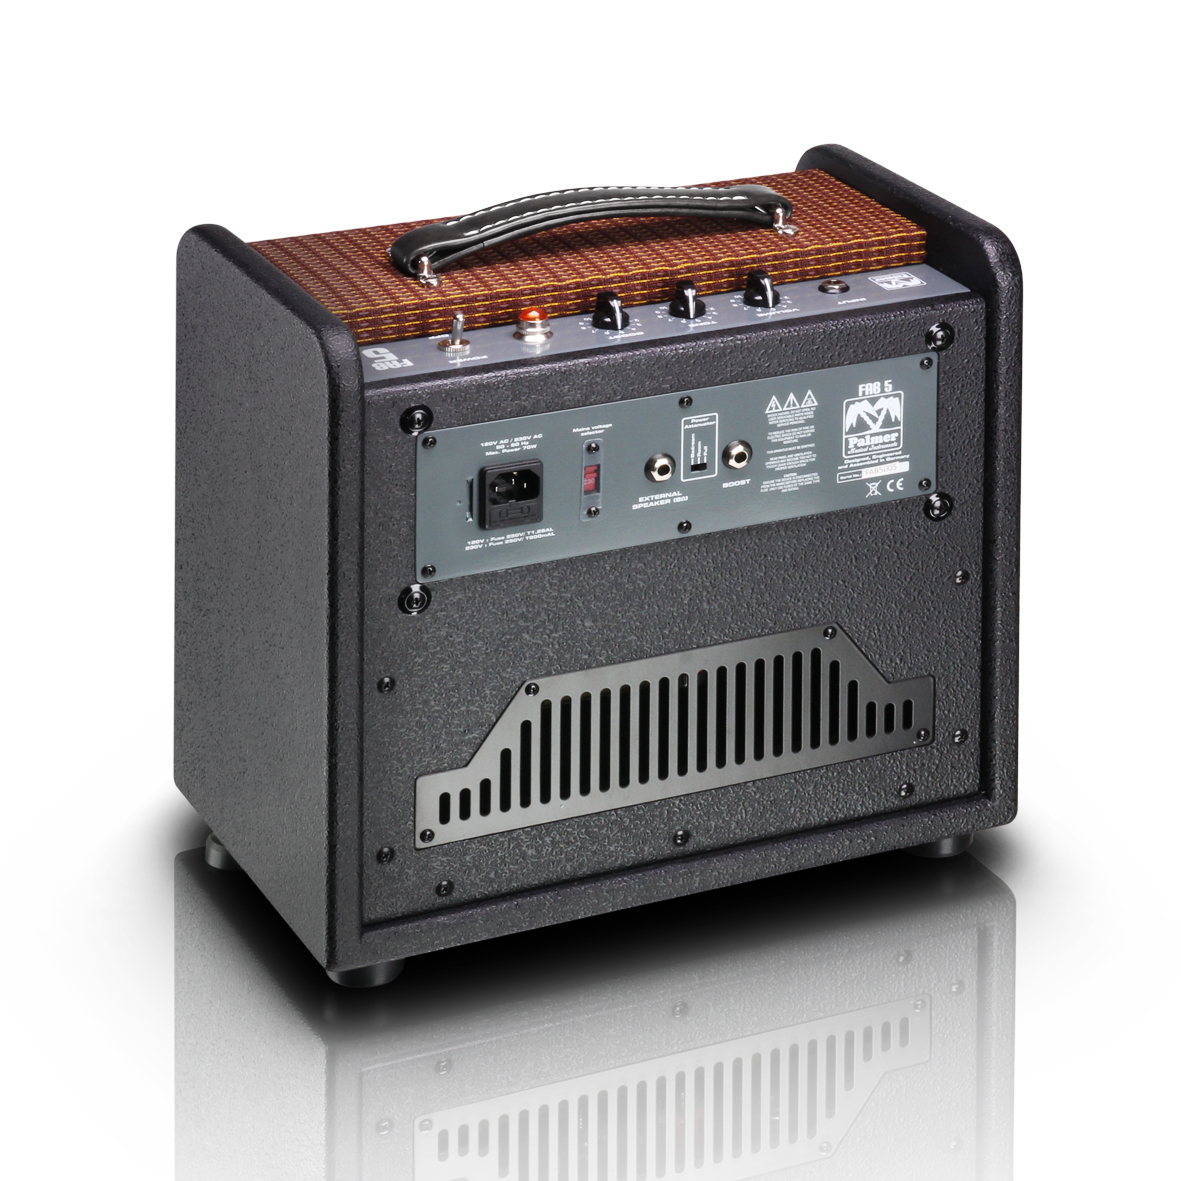 The Palmer FAB5 amplifier – Test report by guitarristaonline es | ah